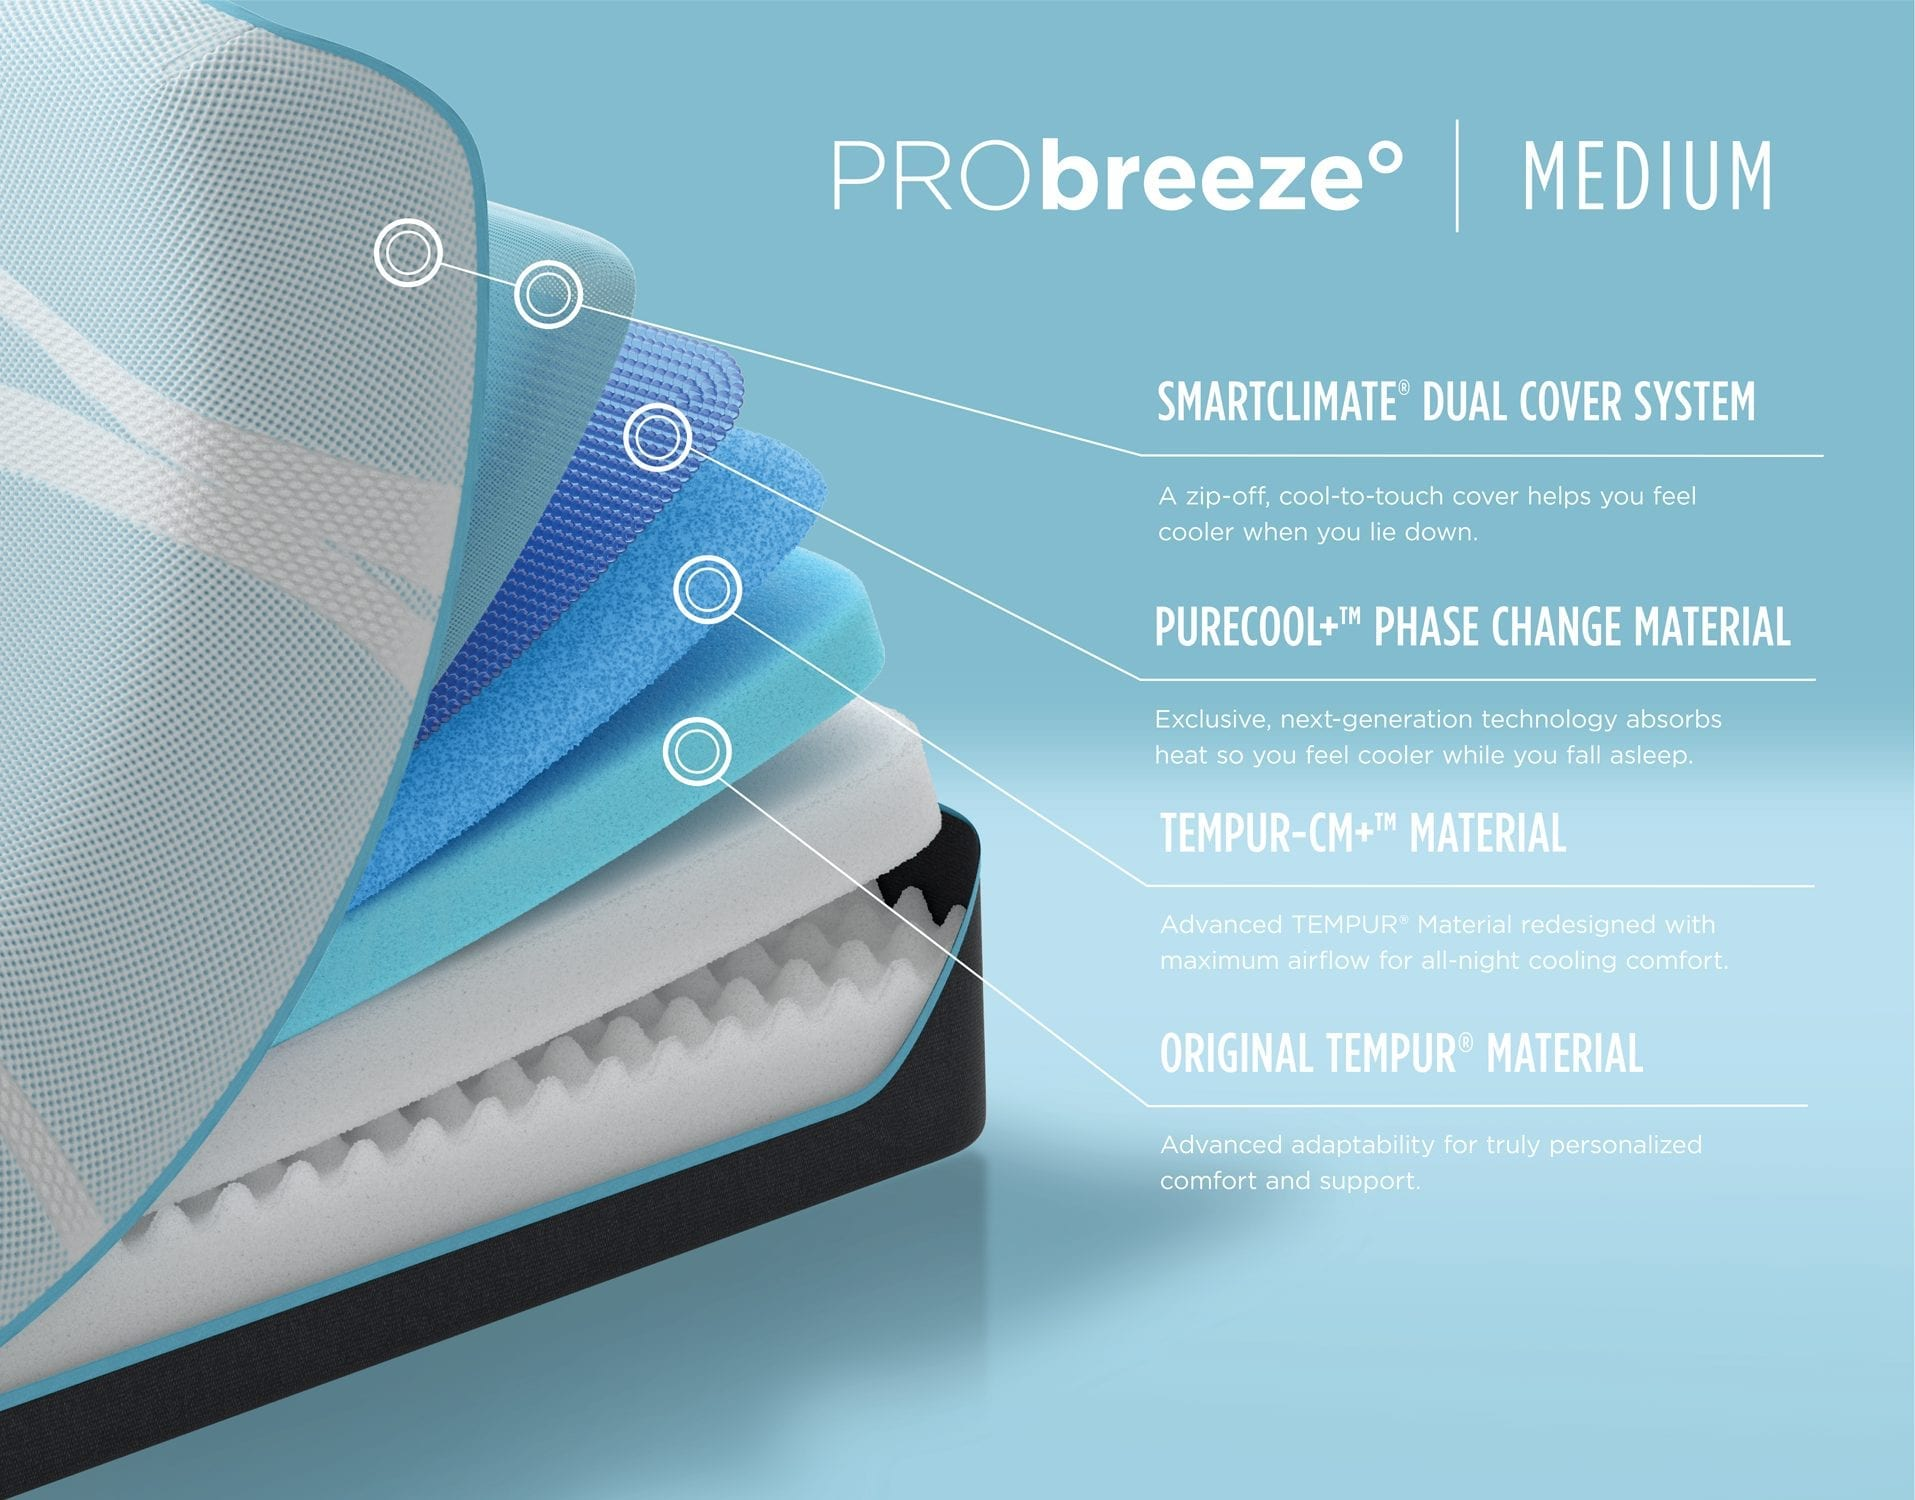 TEMPUR-PRObreeze® Medium mattress layers